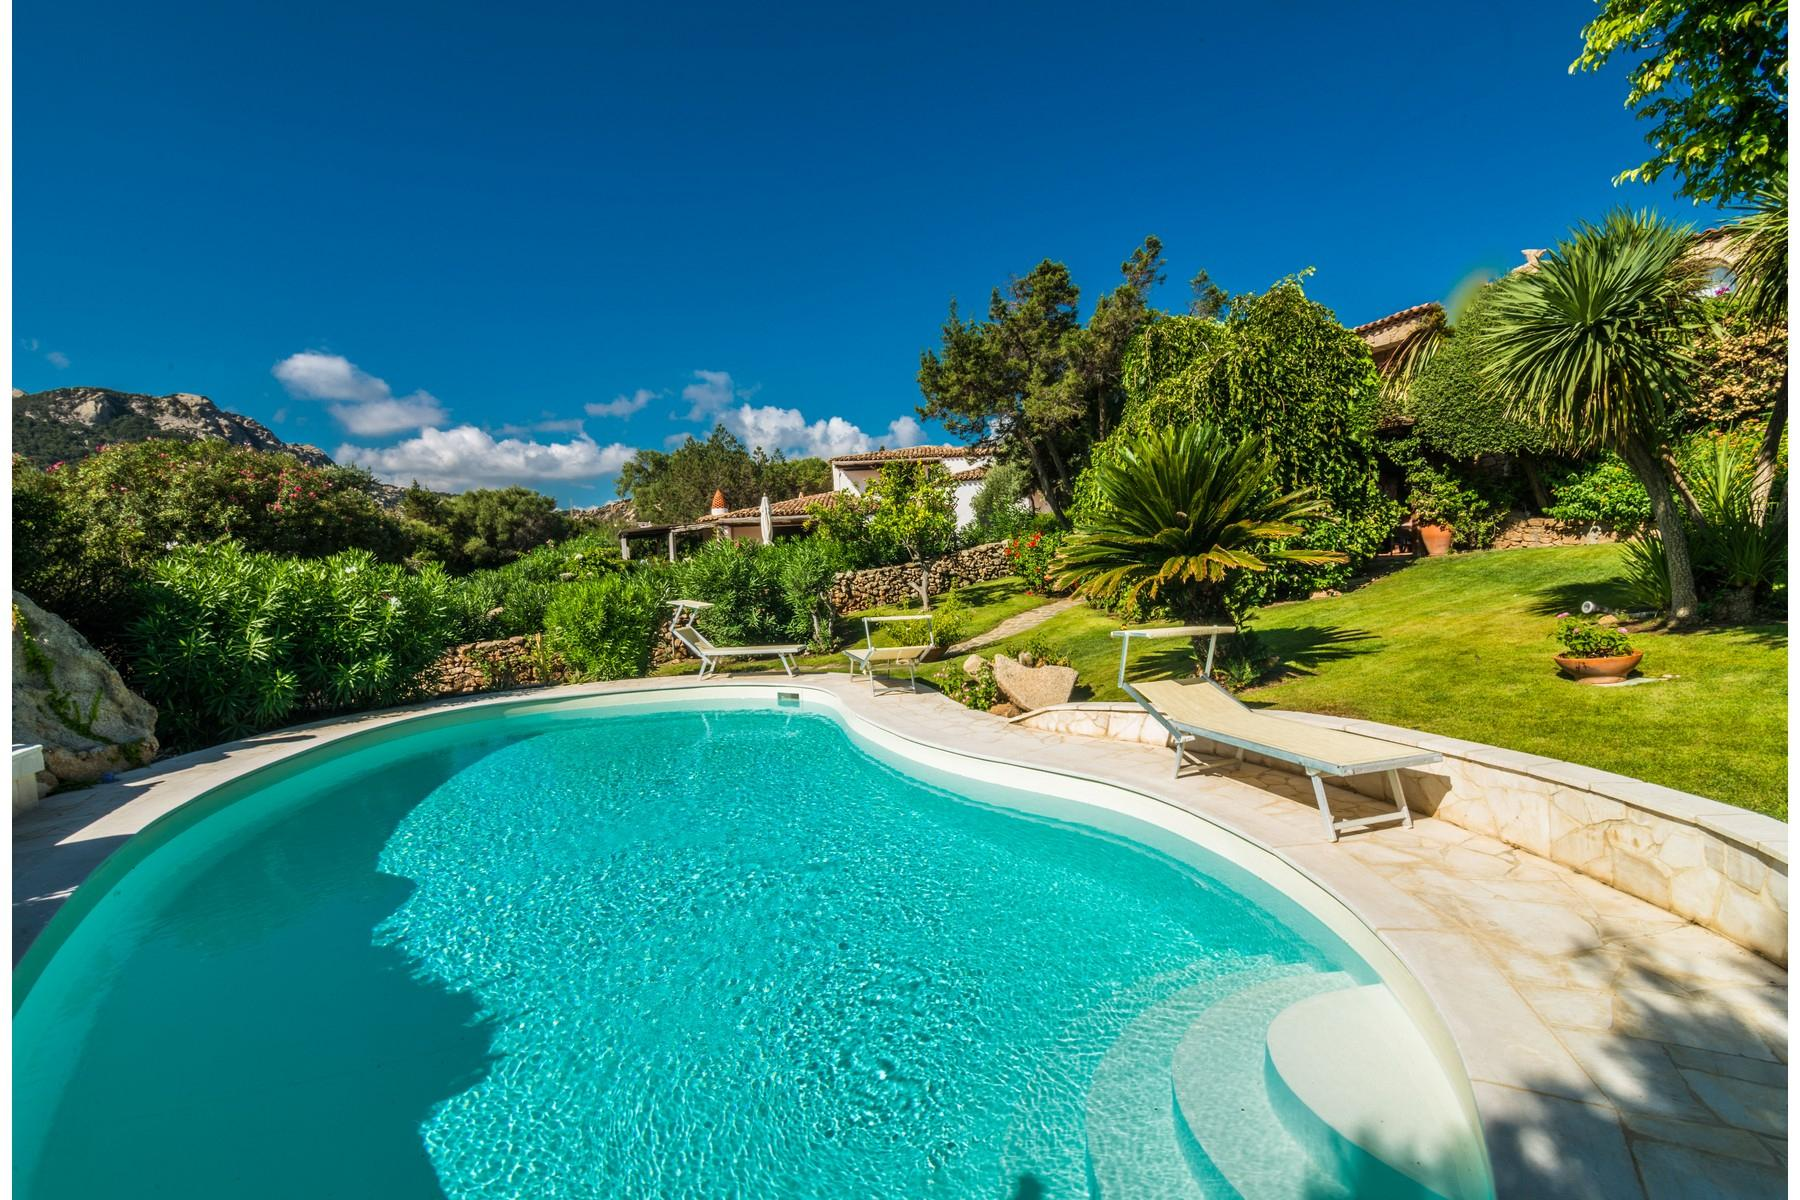 Porto Cervo Marina - Magnificient Villa with private pool - 1